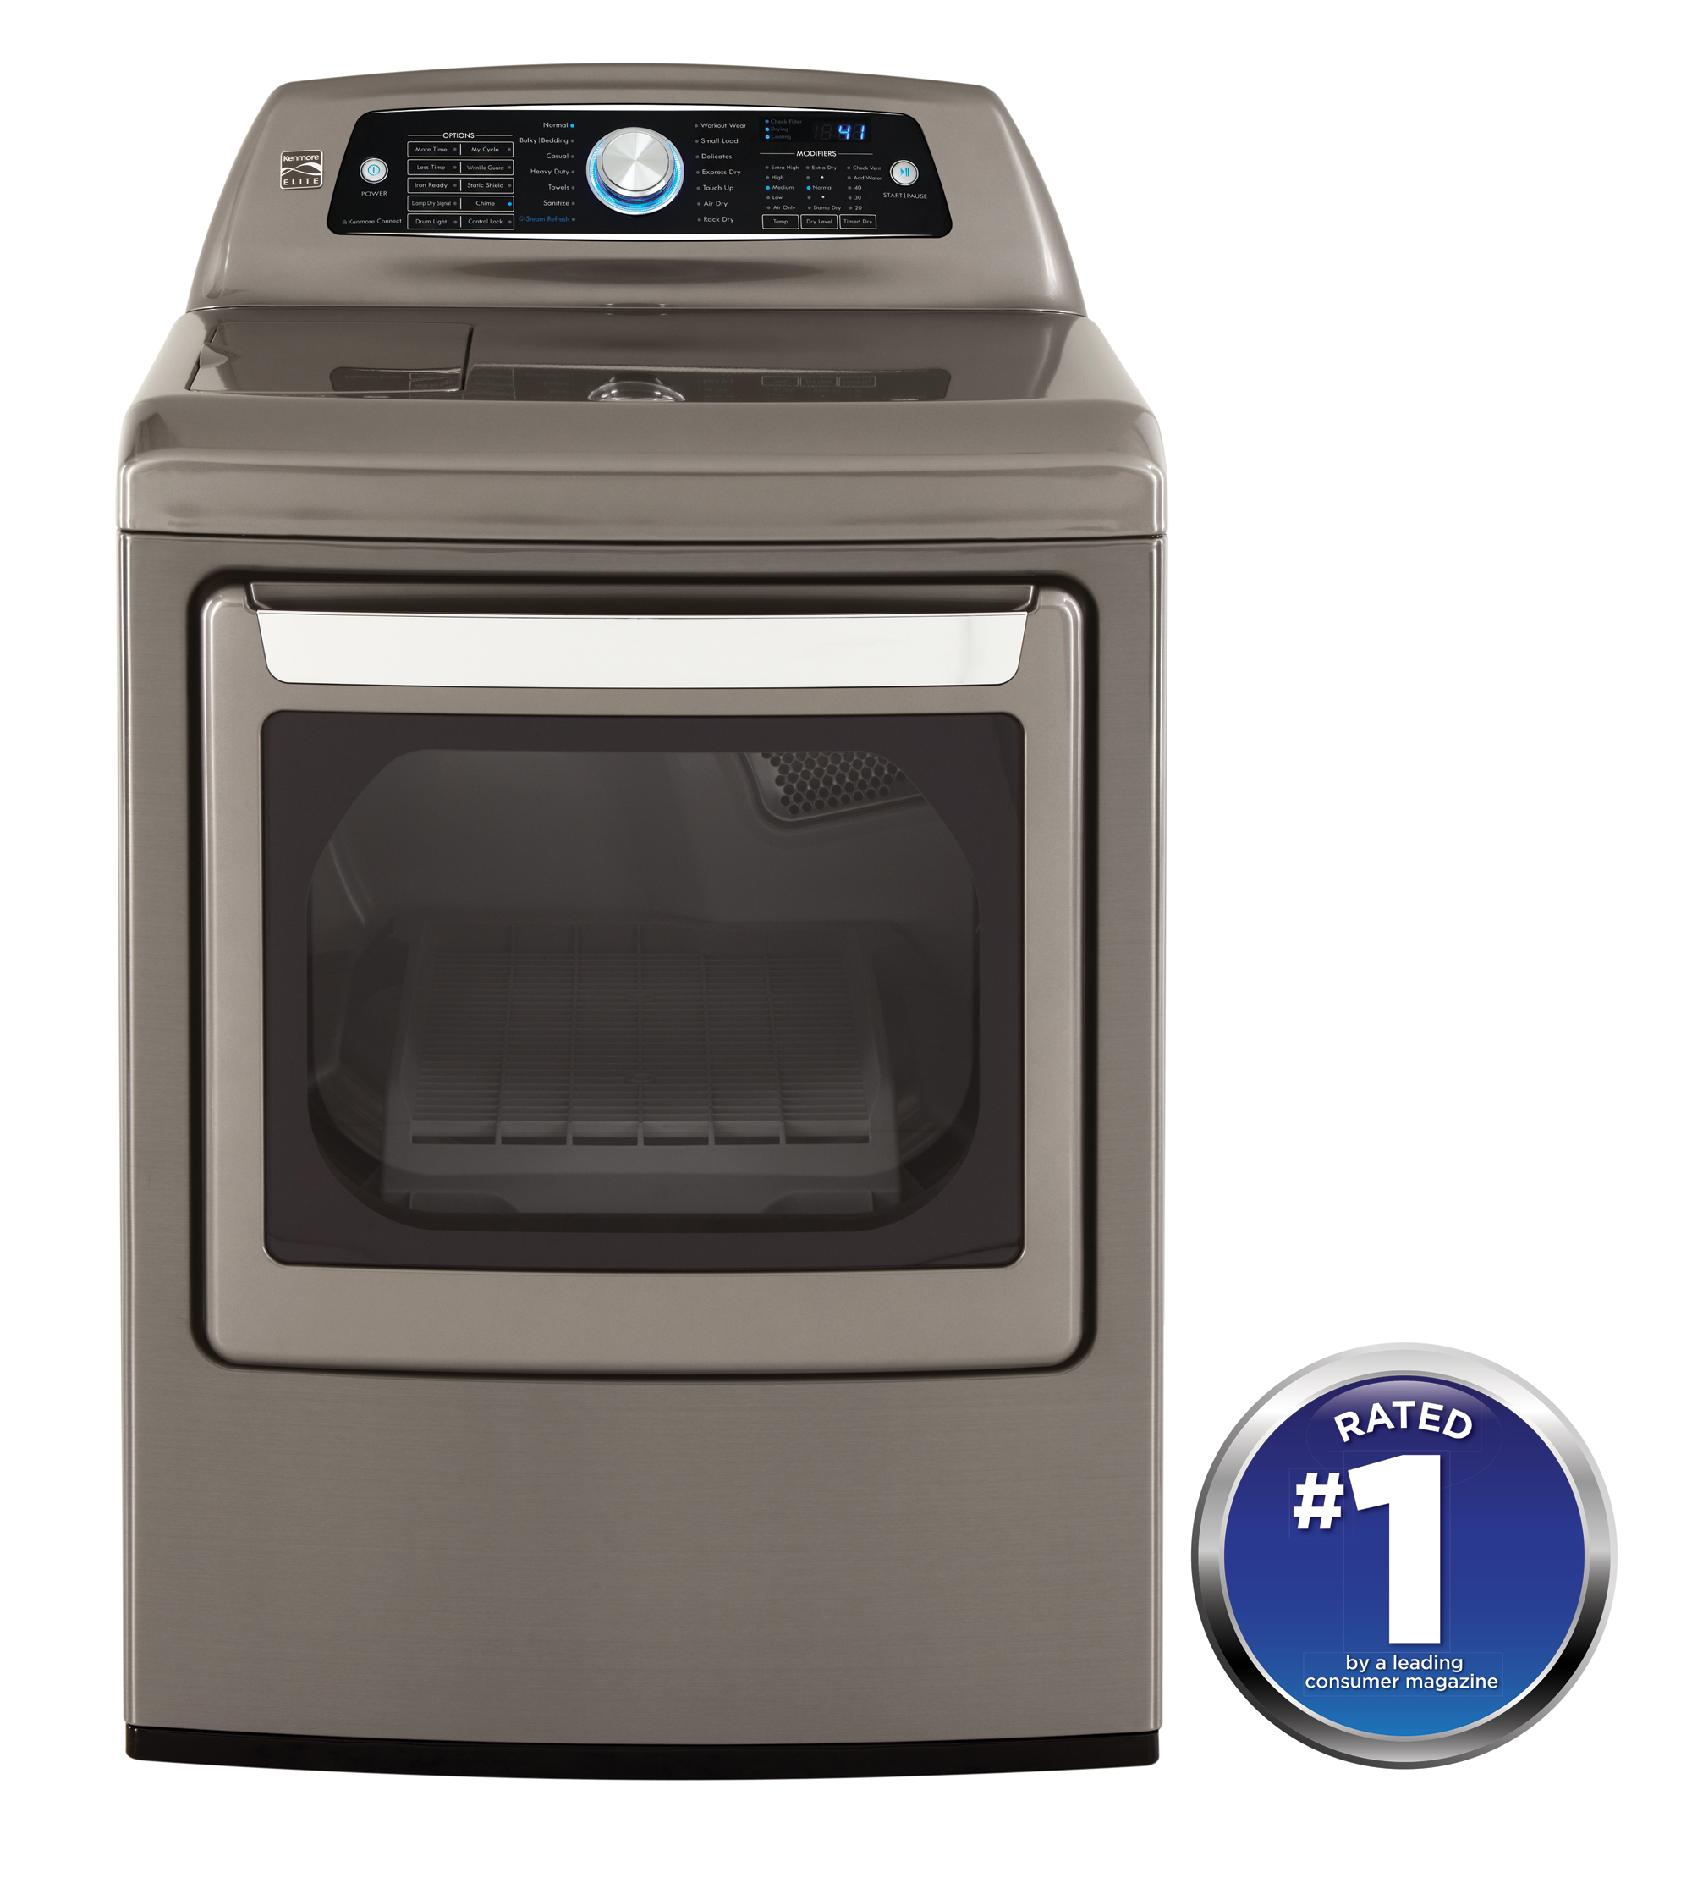 Kenmore Elite 7.3 cu. ft. Electric Dryer w/ Steam – Metallic Gray